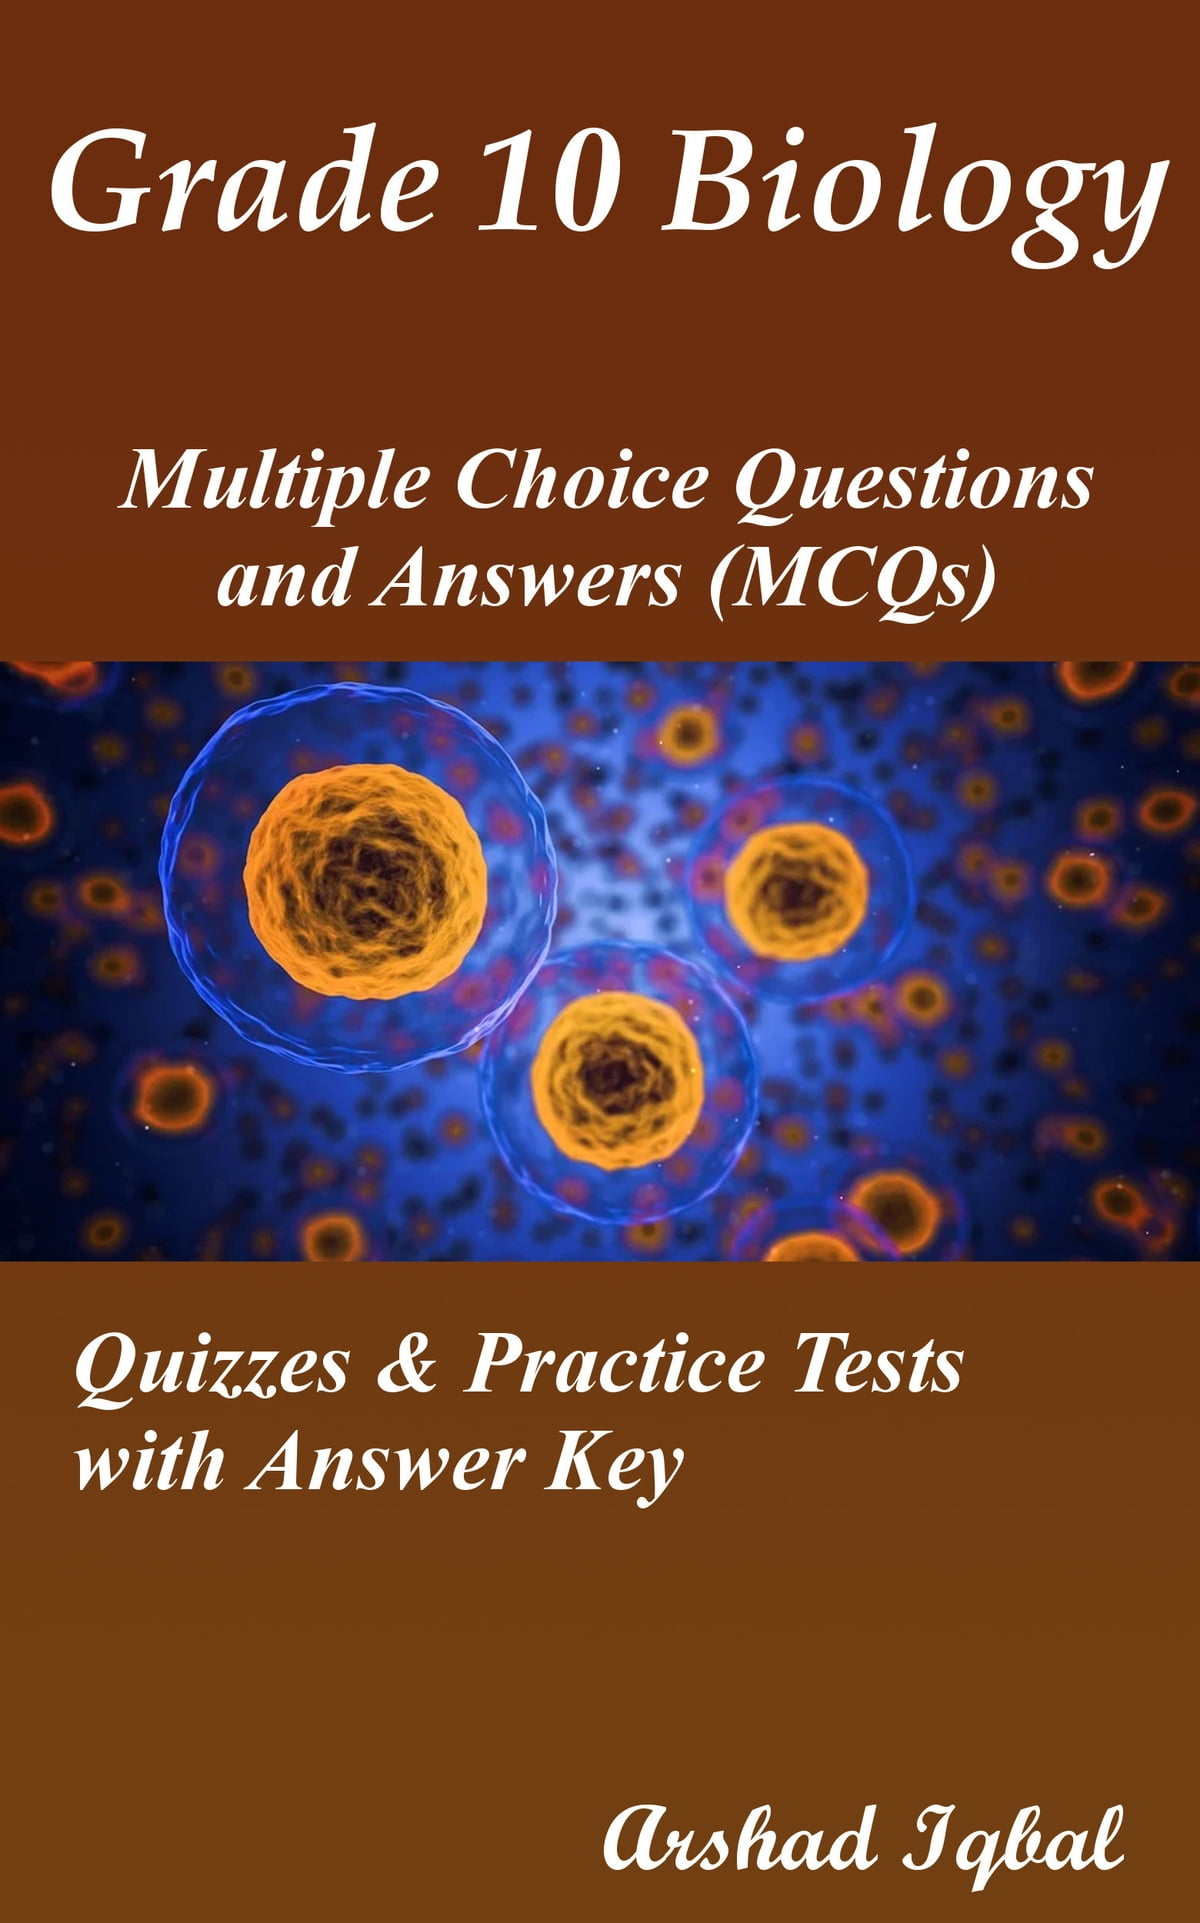 Grade 10 Biology Multiple Choice Questions And Answers MCQs Quizzes Practice Tests With Answer Key Ebook By Arshad Iqbal Rakuten Kobo